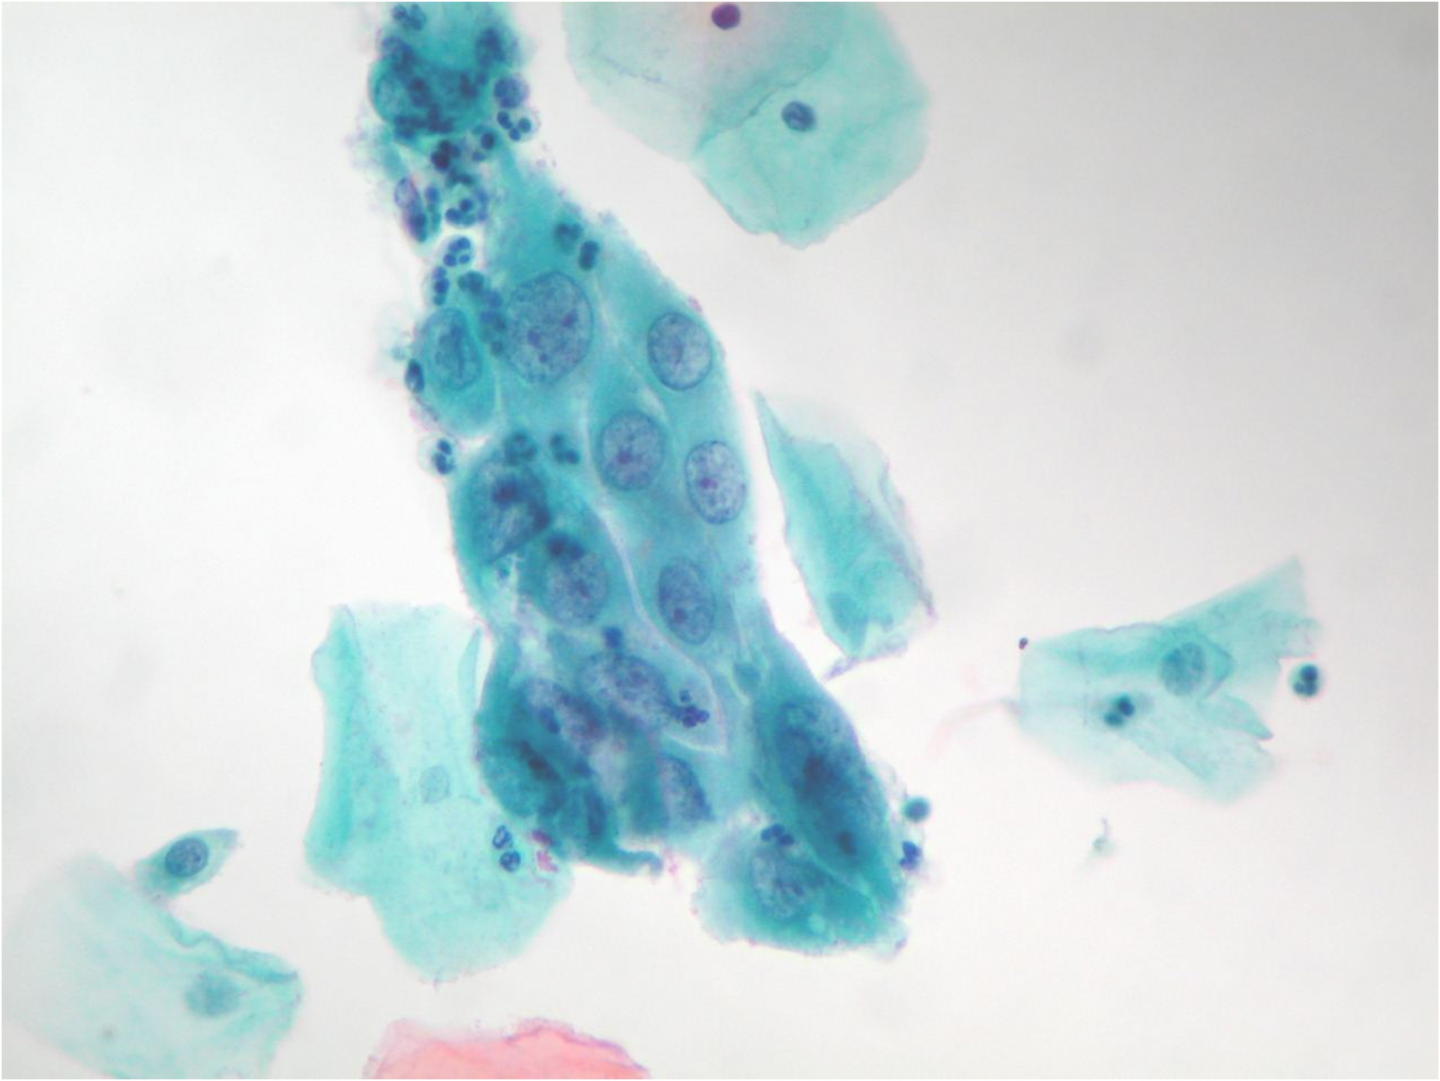 Reactive cytological changes   Eurocytology